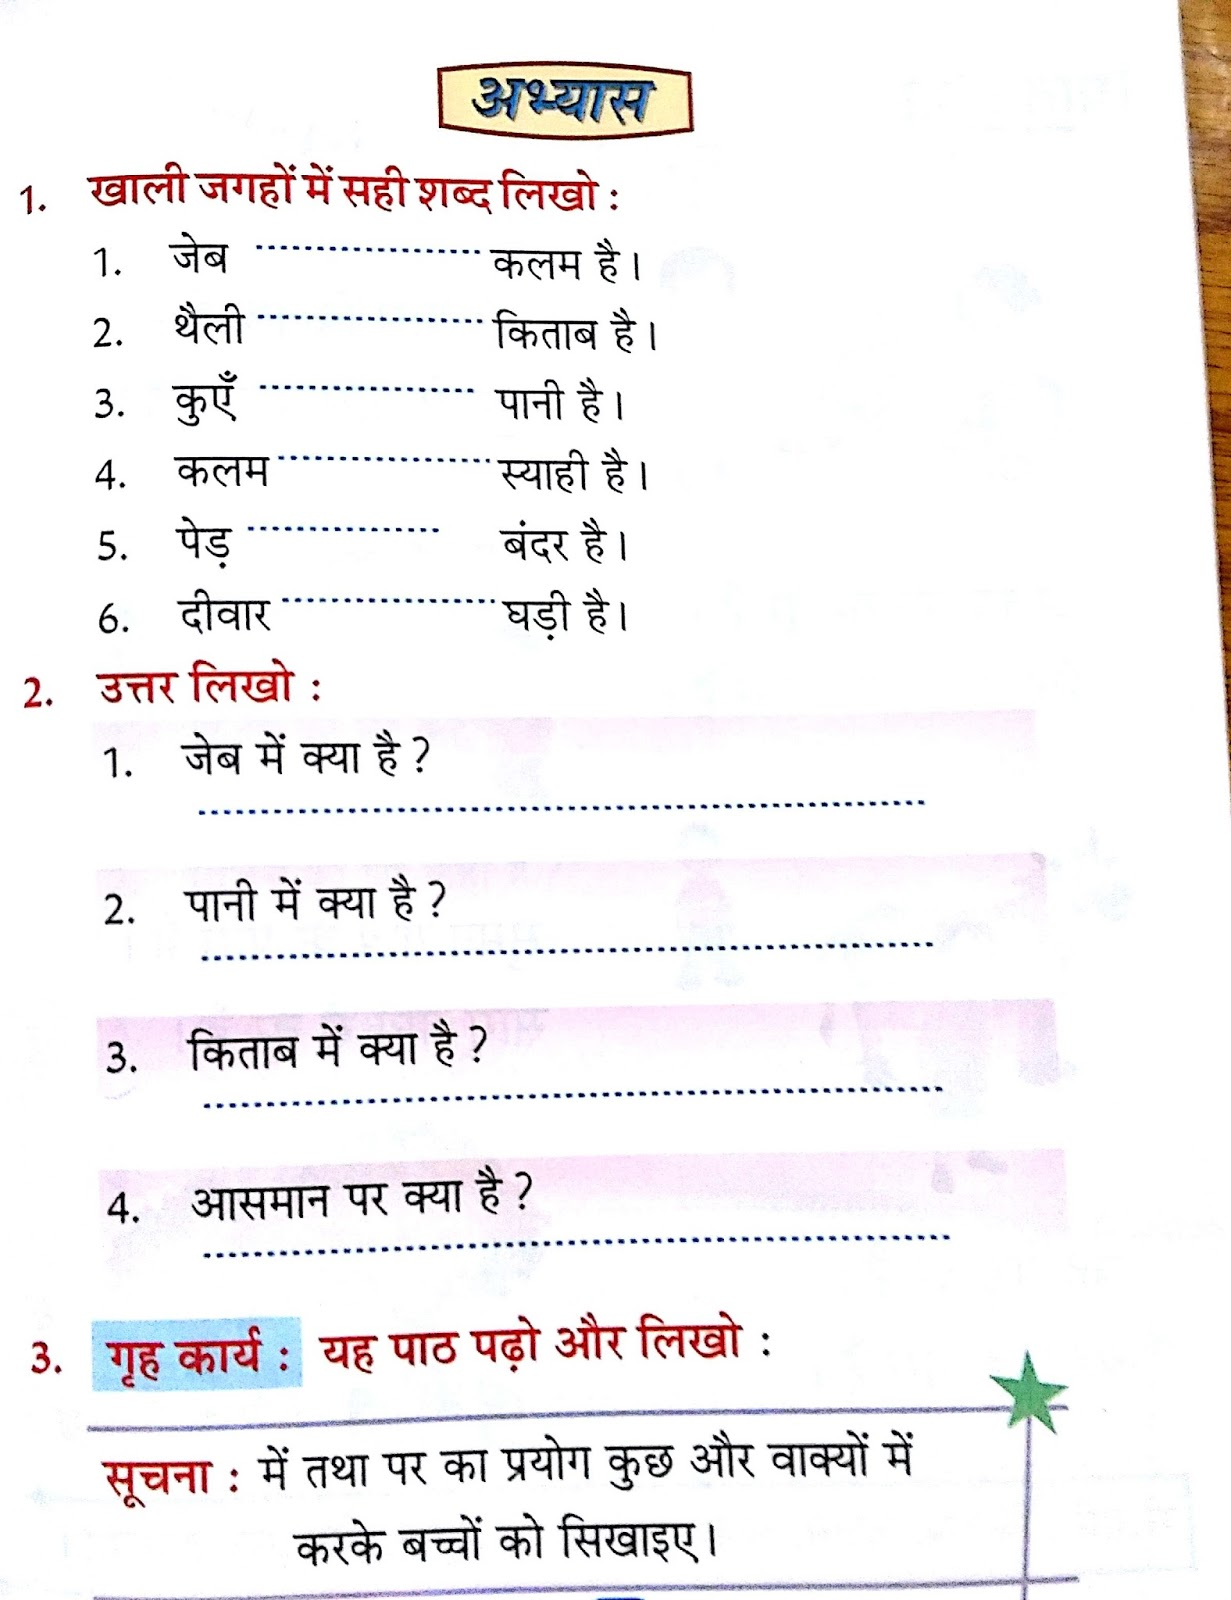 Badlo Vachan Hindi Worksheet Printable Worksheets And Activities For Teachers Parents Tutors And Homeschool Families